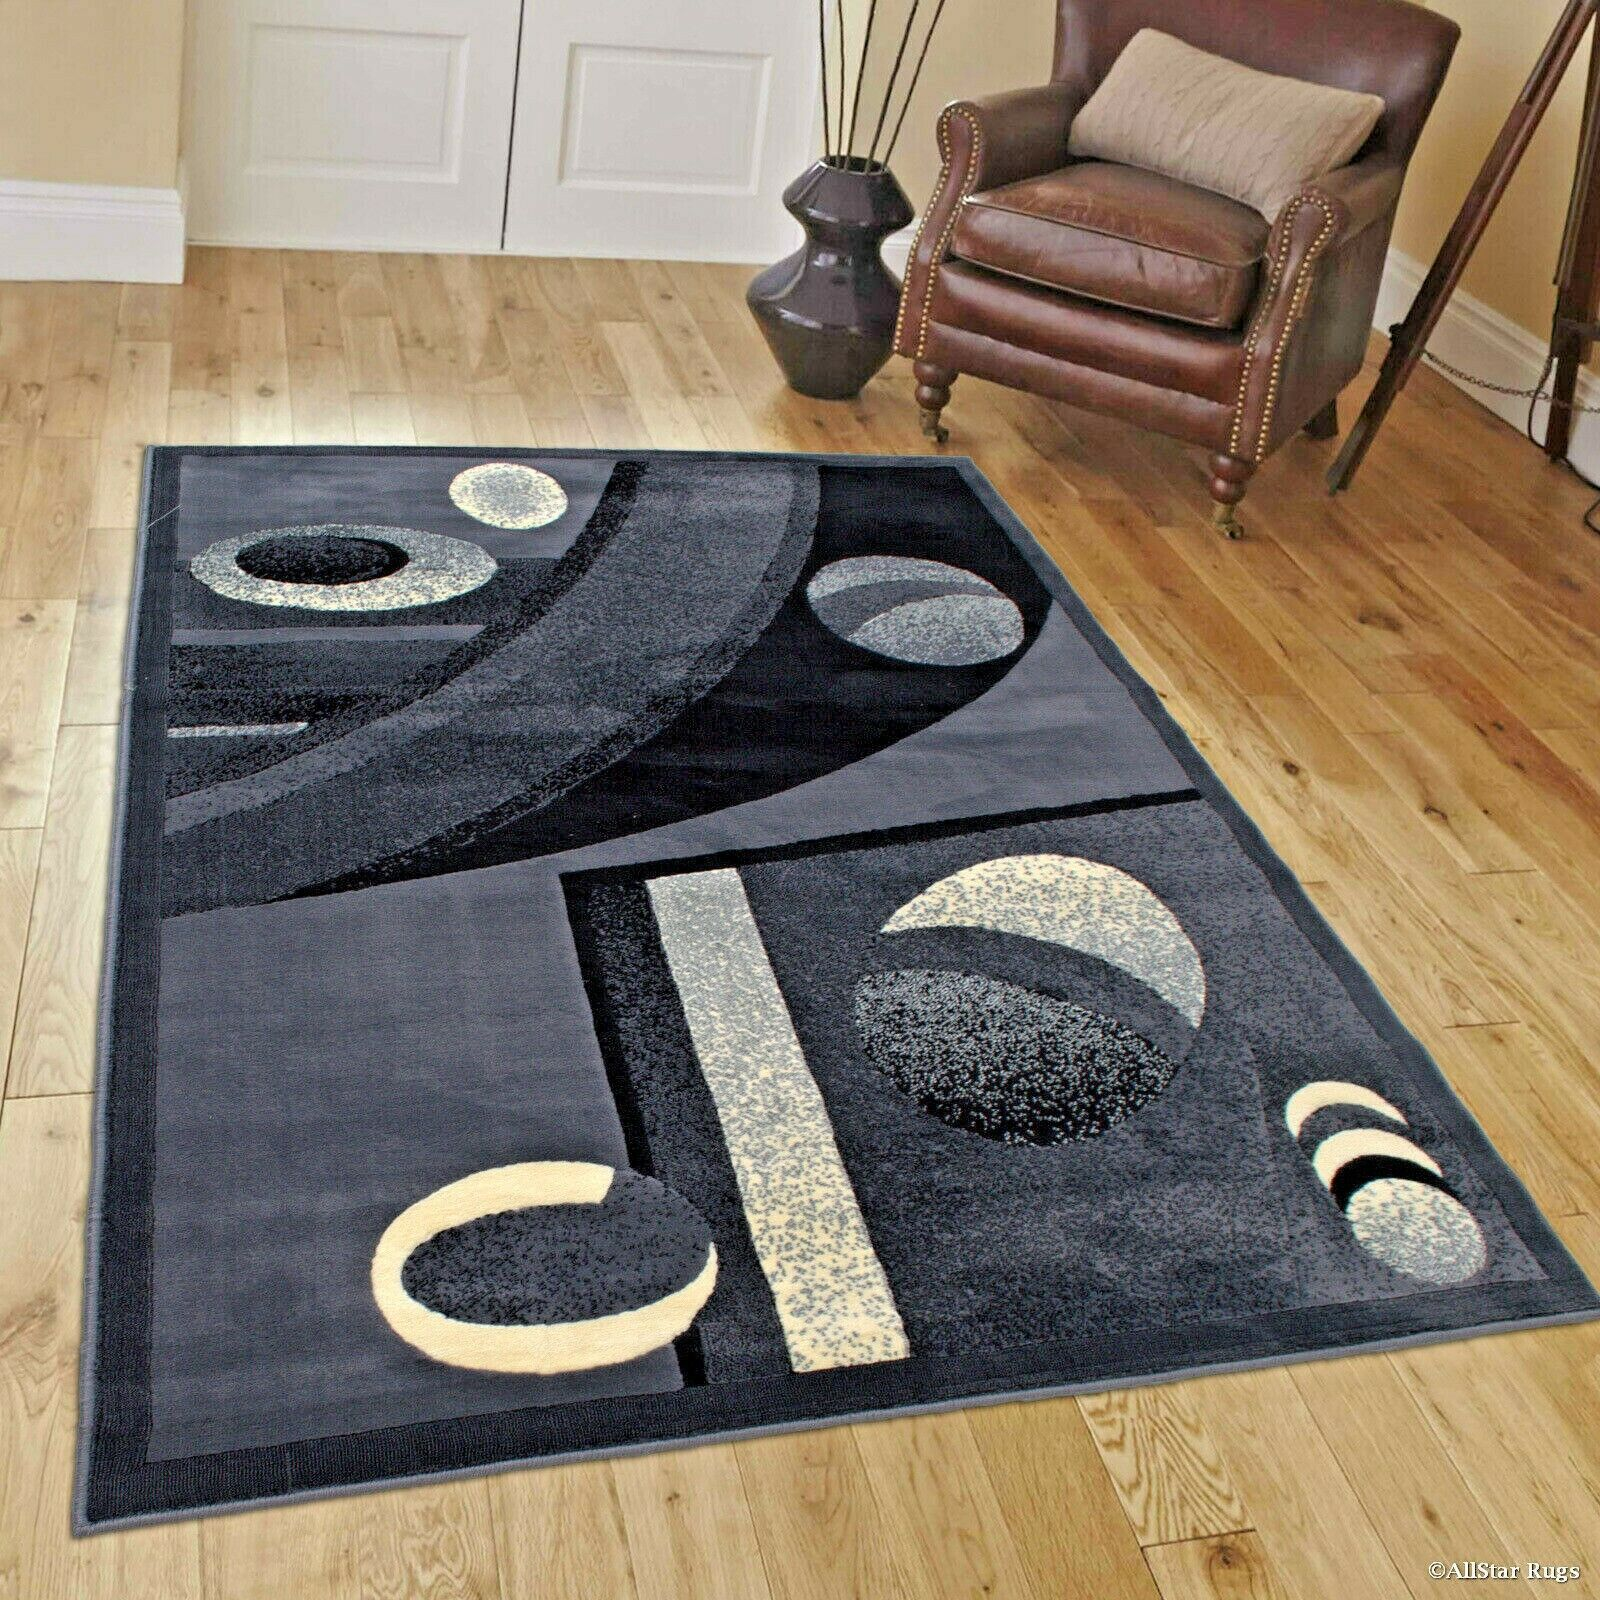 Details About Rugs Area Rugs Carpets 8x10 Area Rug Modern Big Gray Large Room Floor Grey Rugs